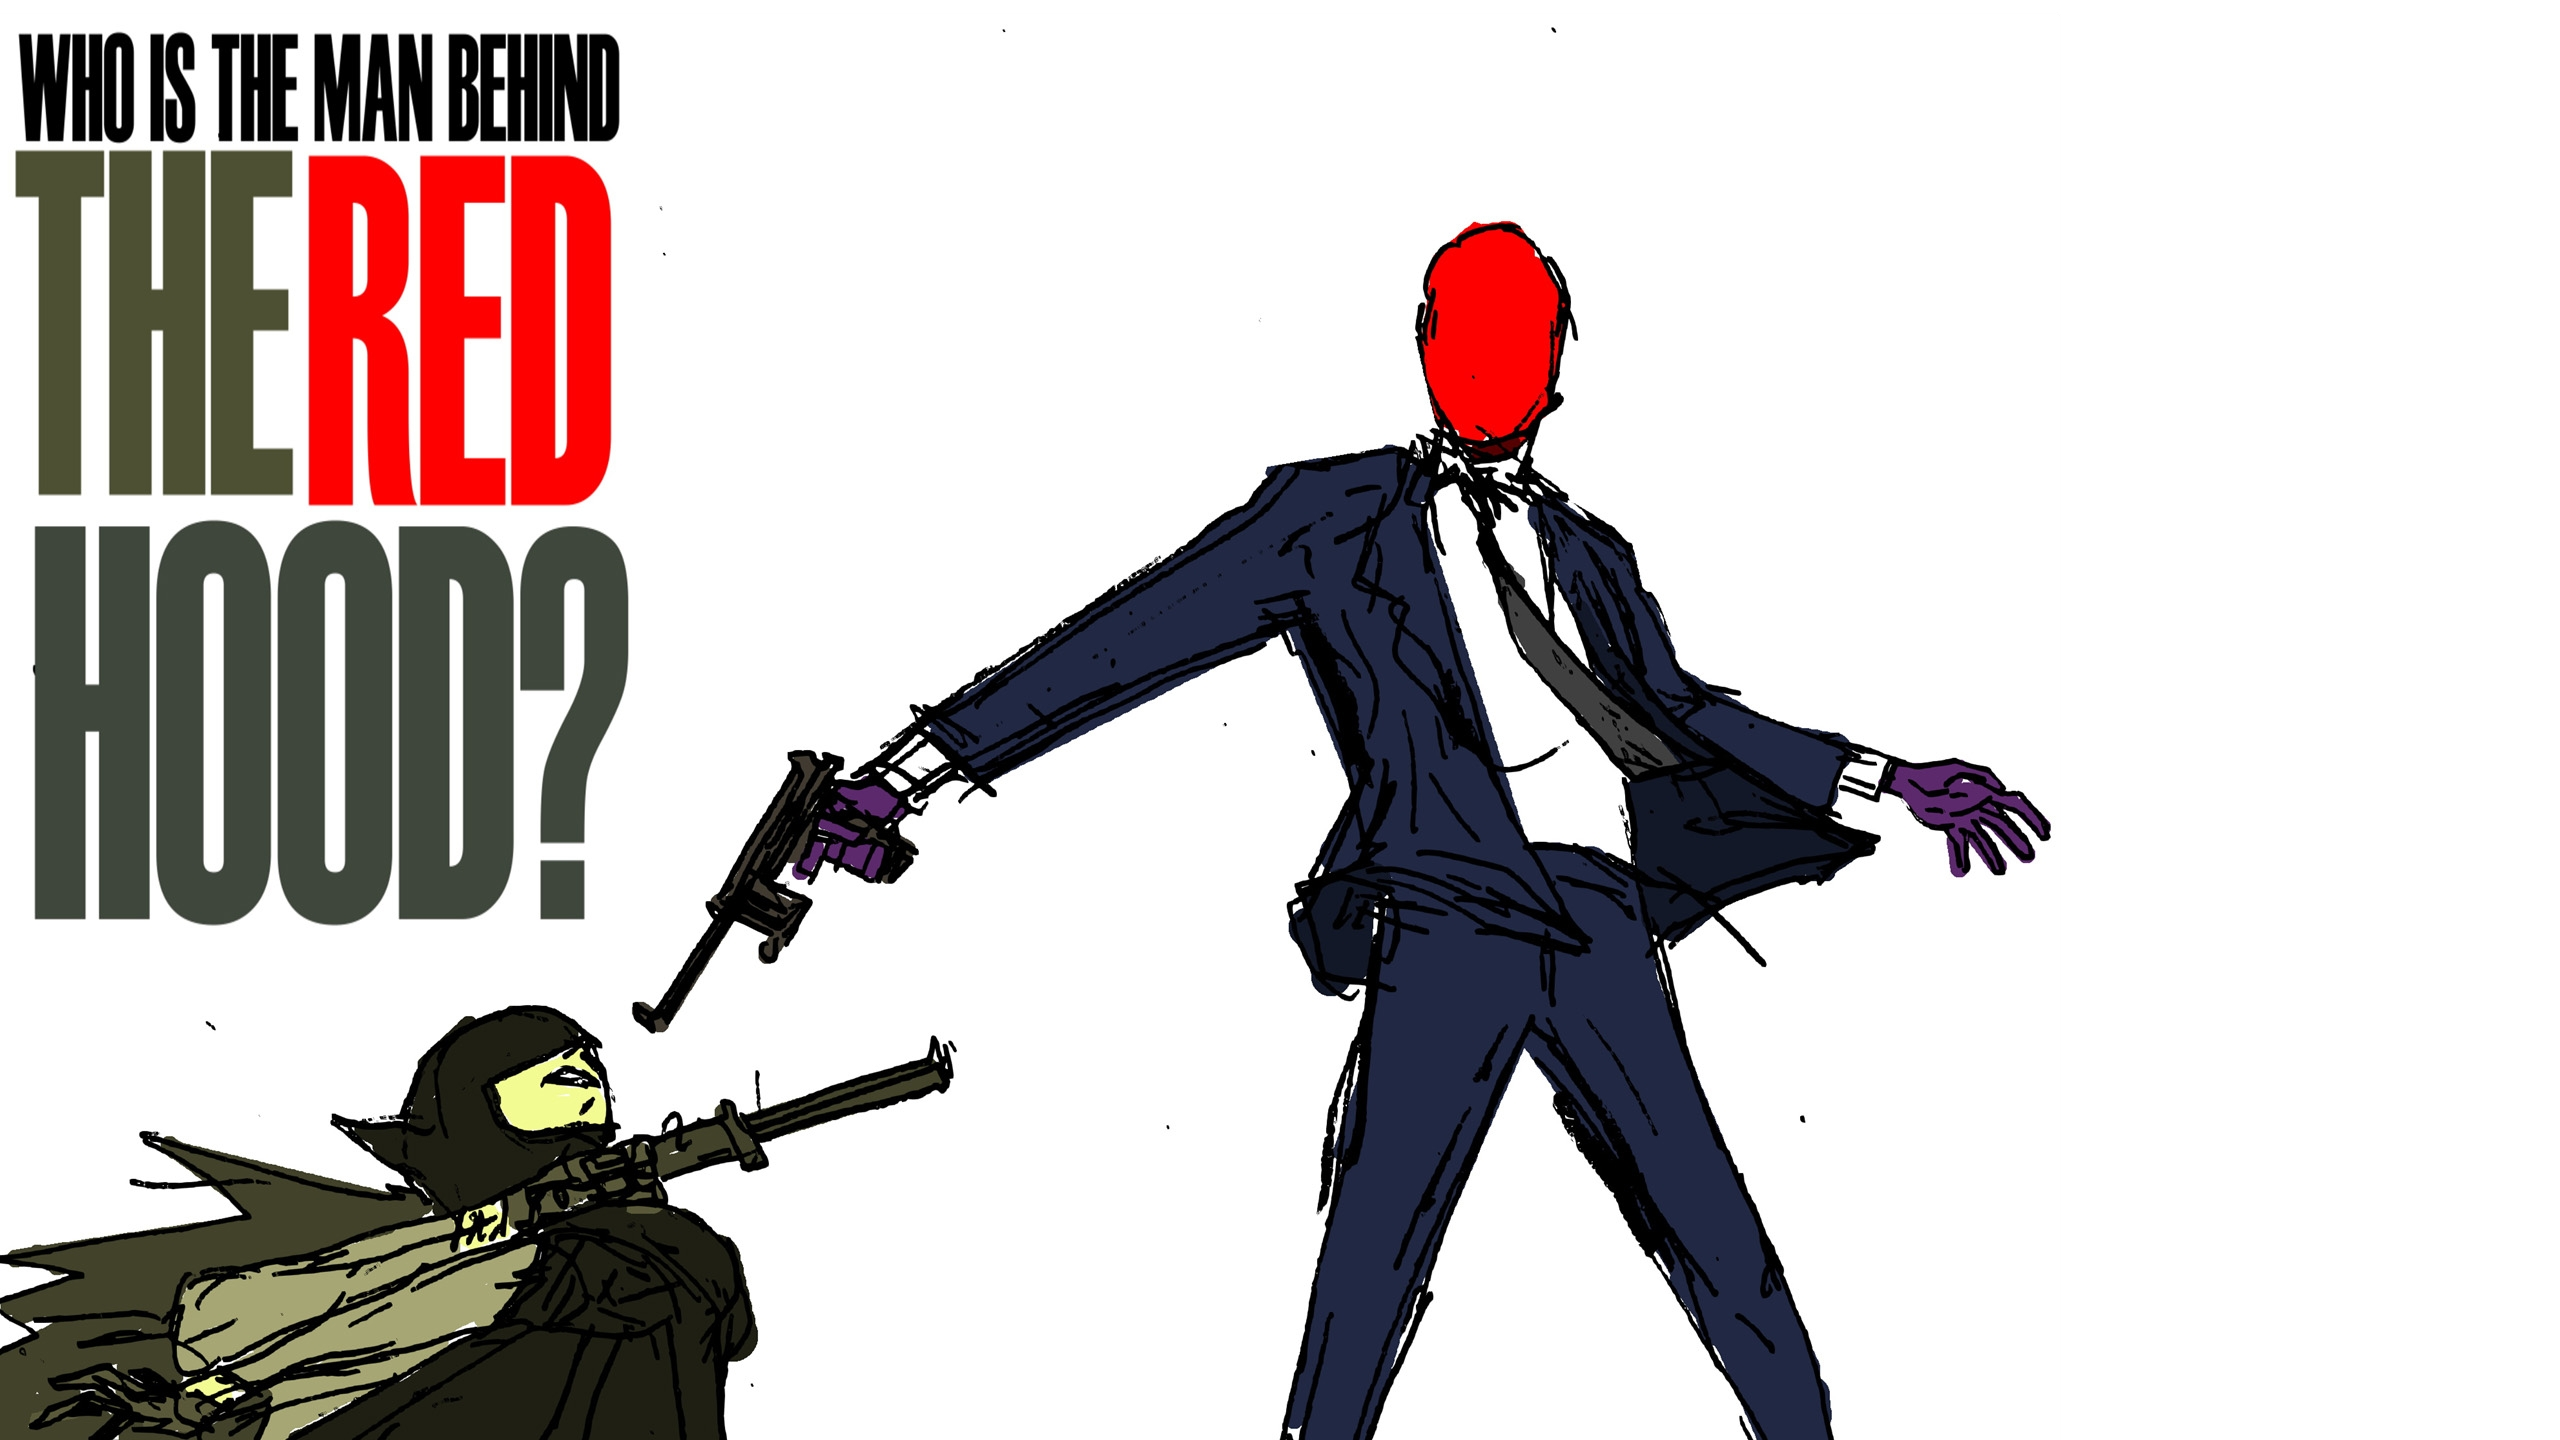 batman vs red hood - photo #25